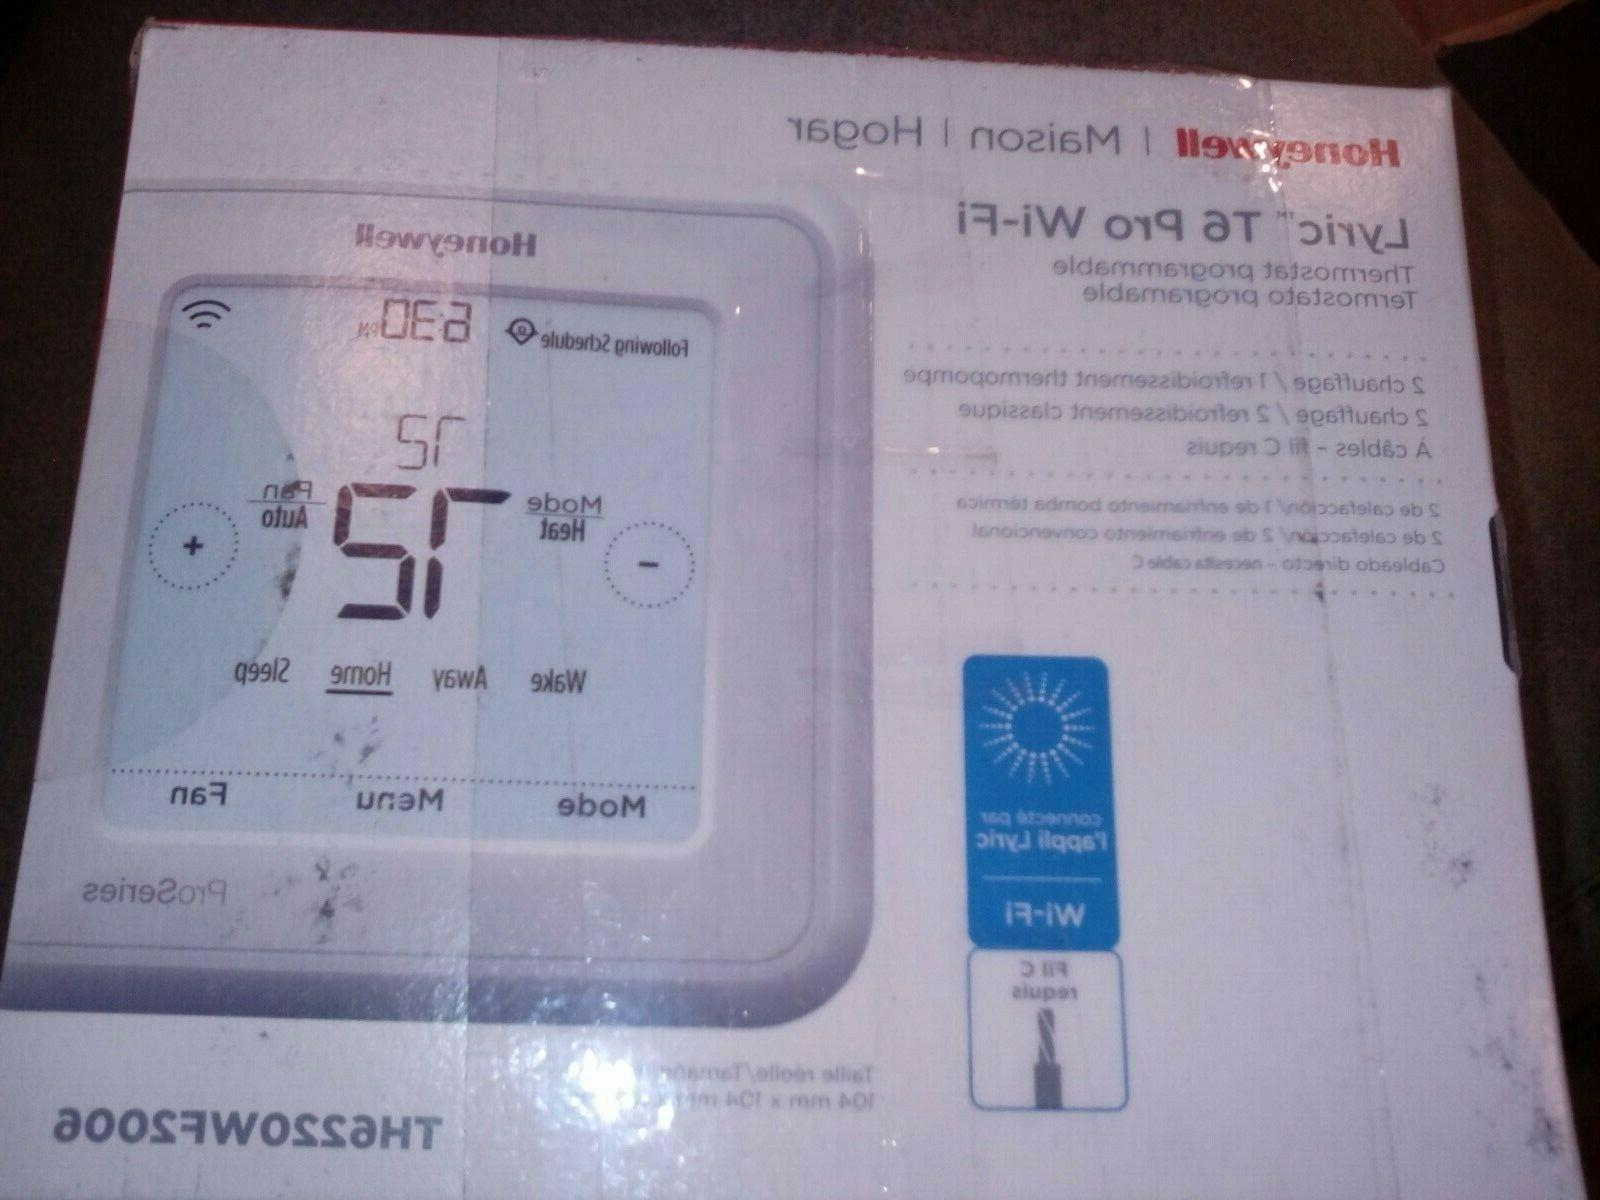 lyric t6 thermostat pro wifi programmable th6220wf2006